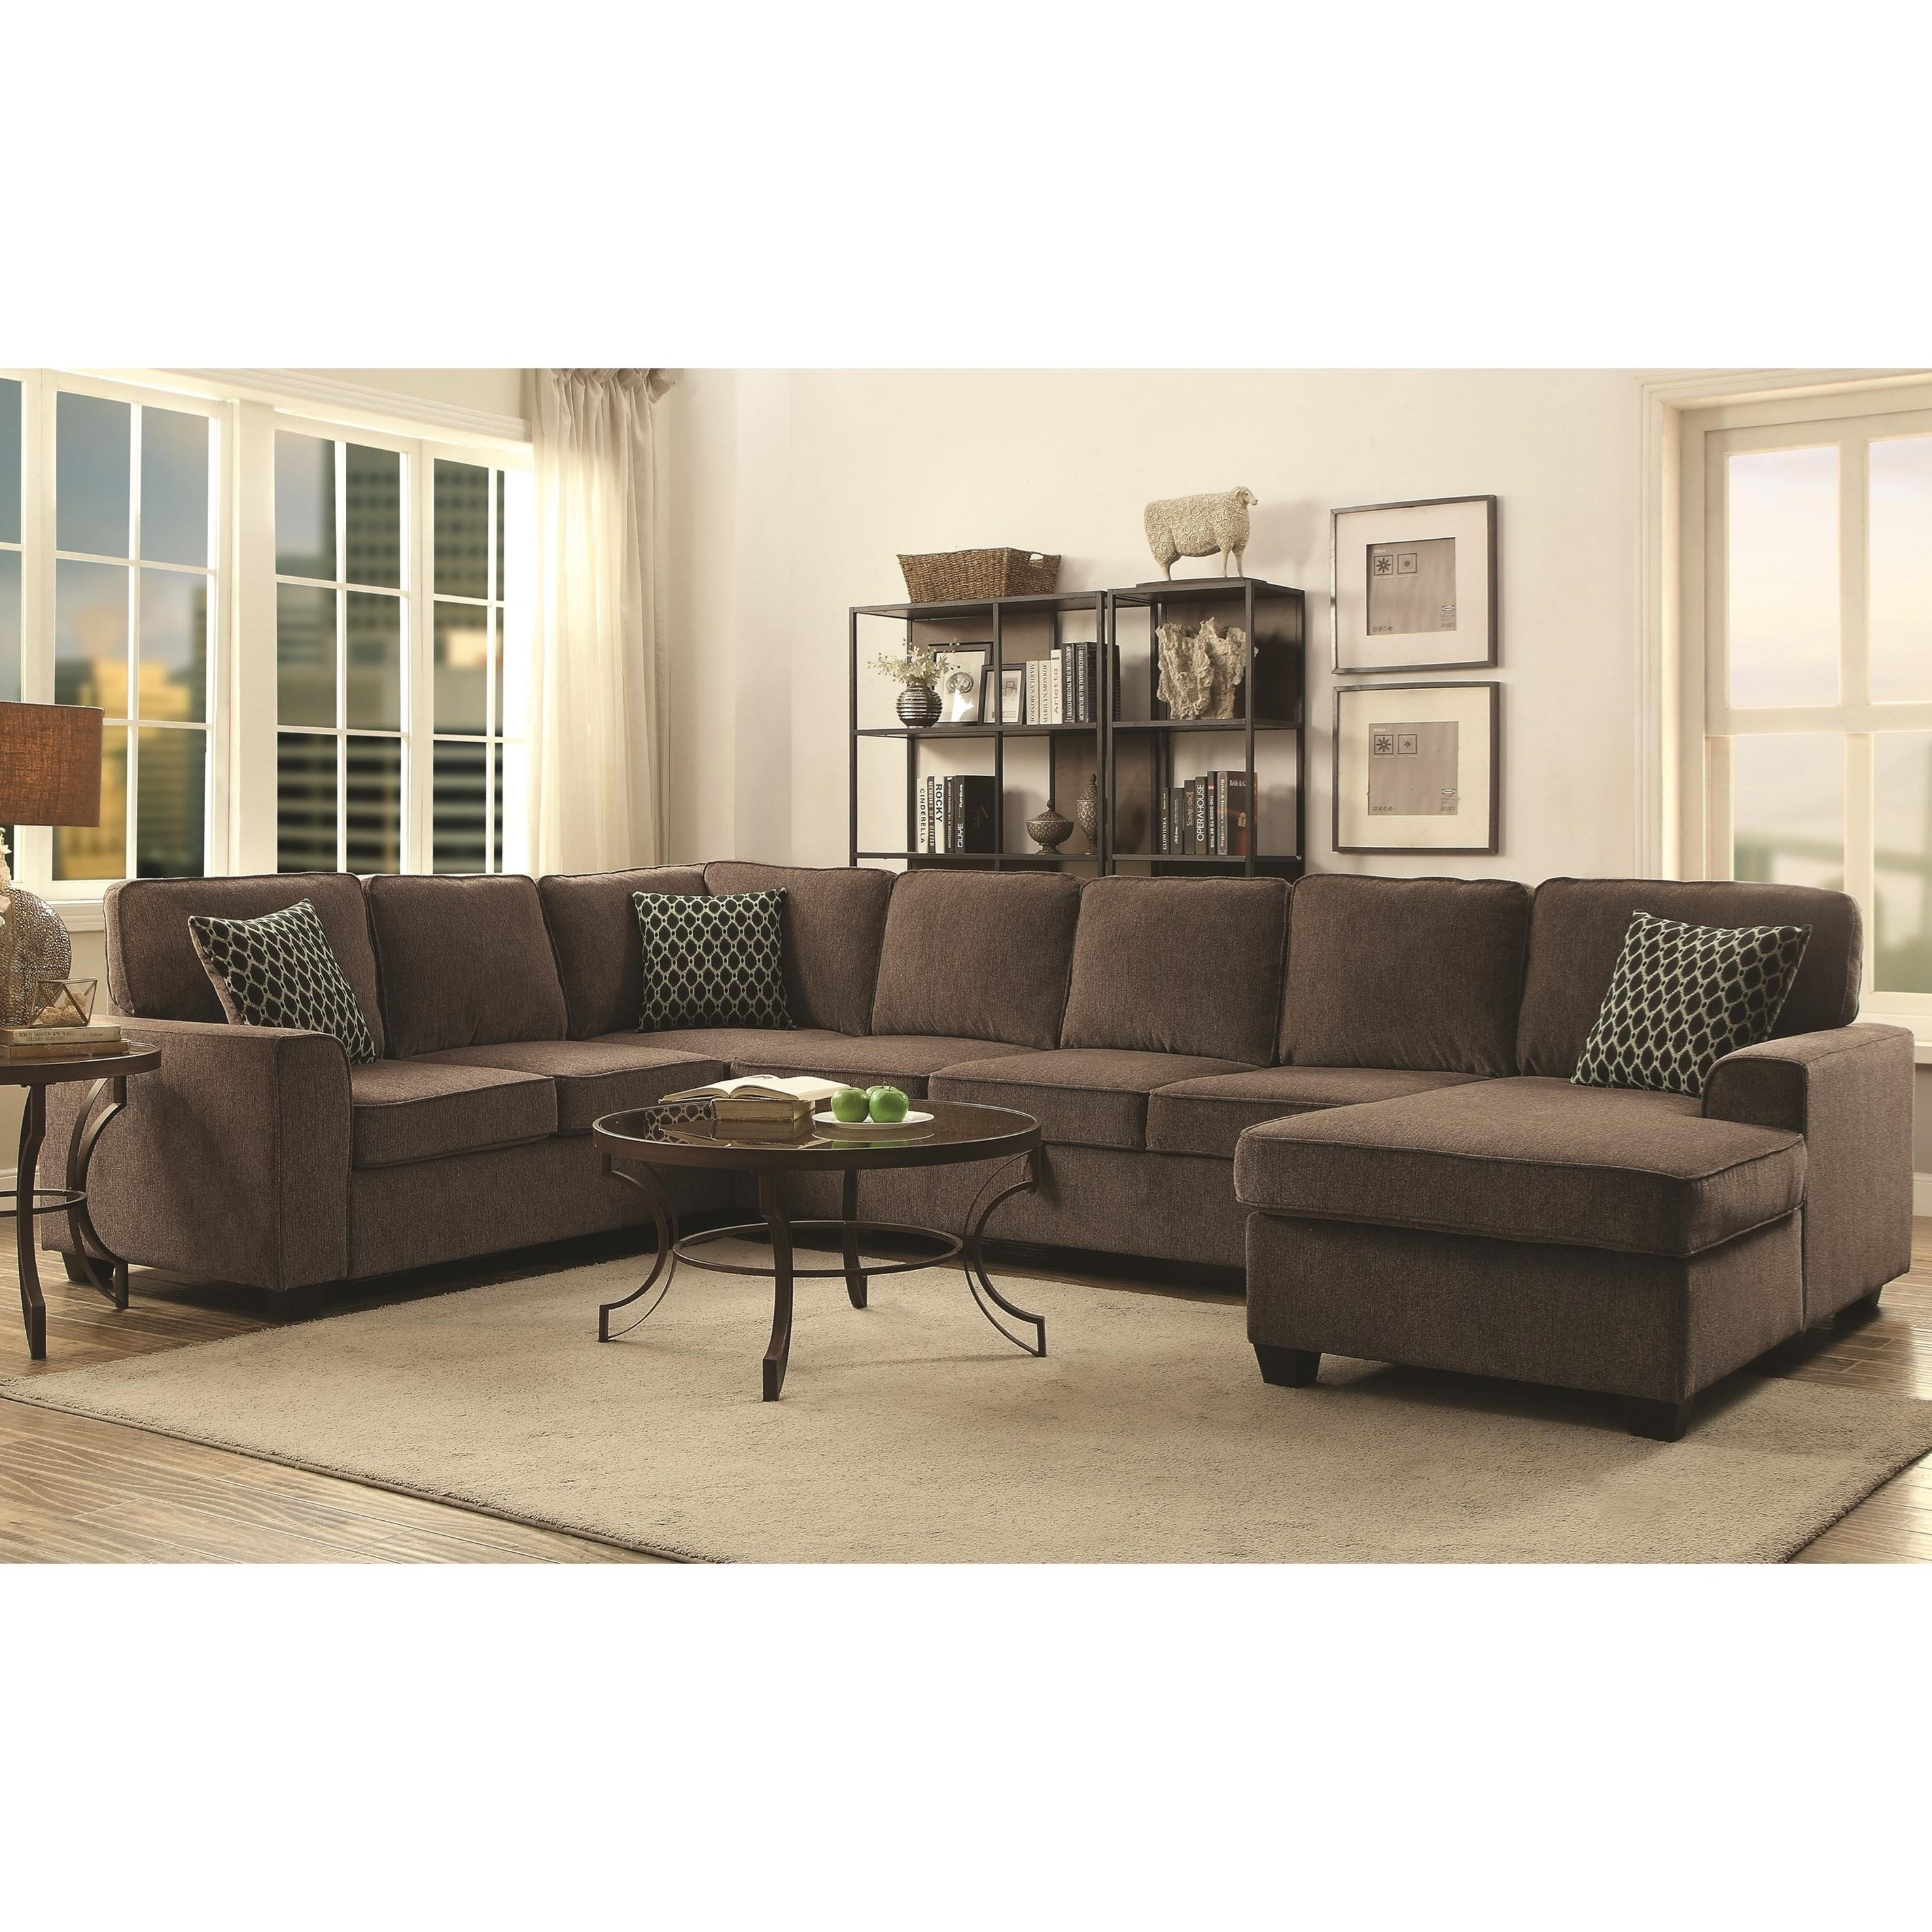 Living Room Built In Storage: Fine Furniture Provence 501686 Sectional With Chaise And